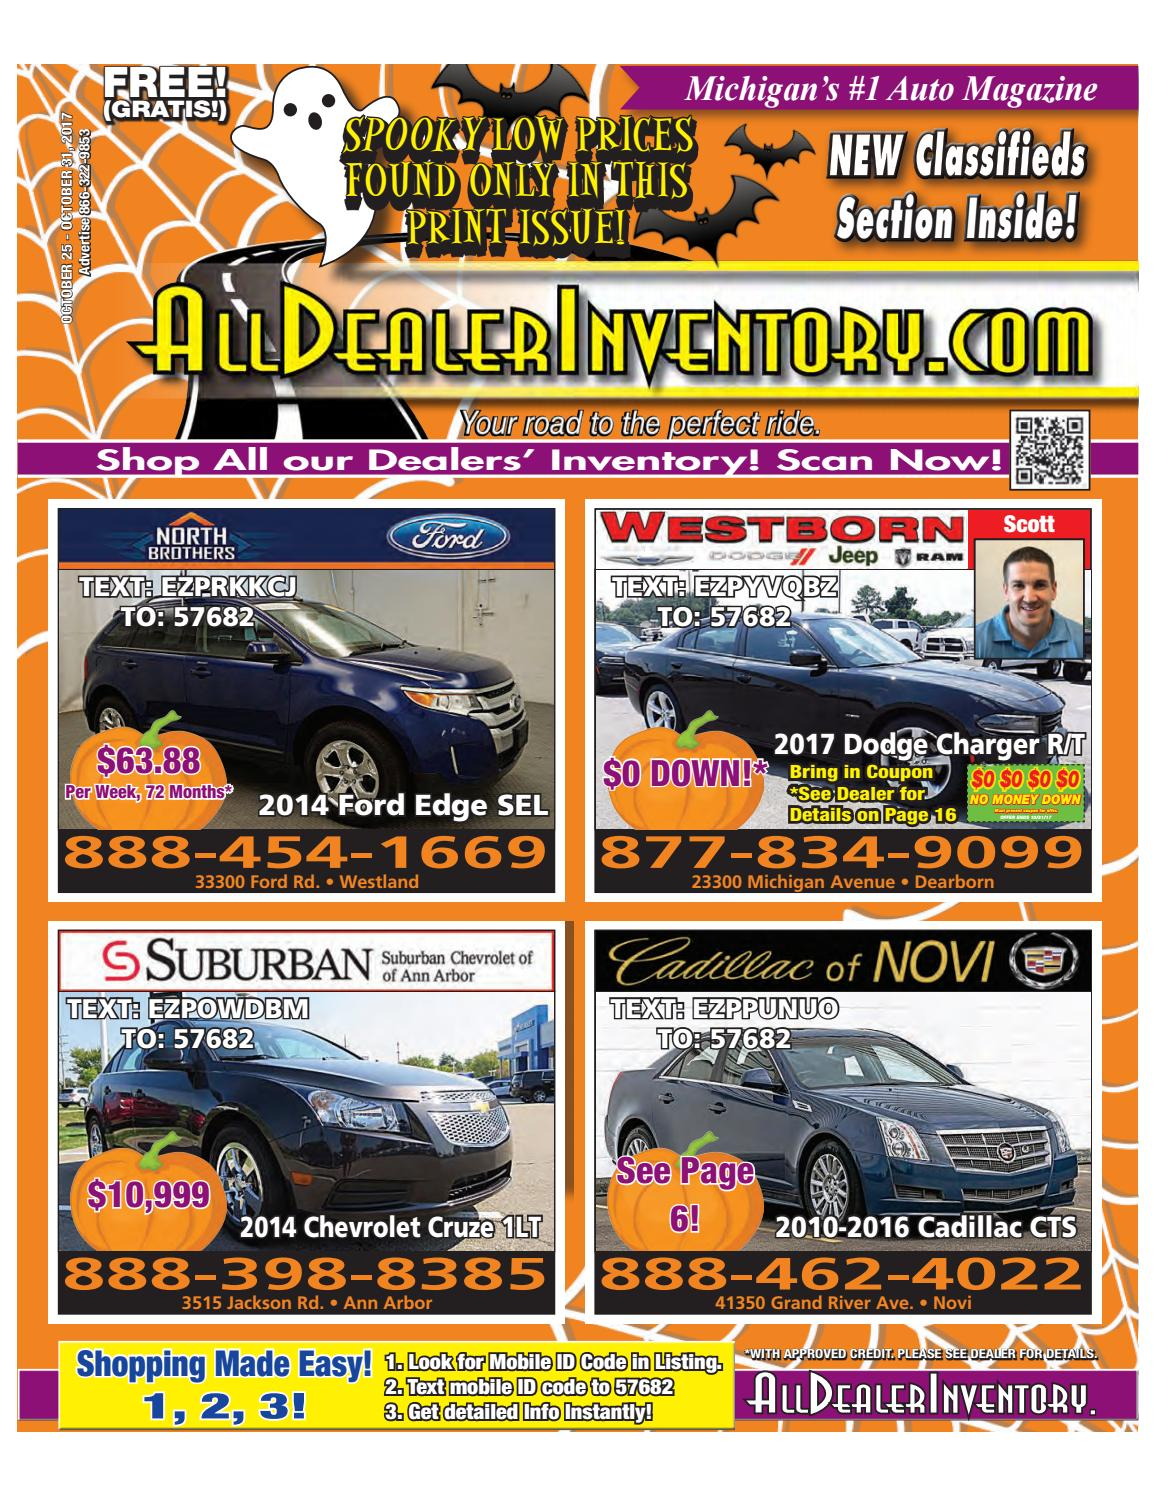 No Money Down Car Dealers >> All Dealer Inventory S October 25th Edition Shop The Best